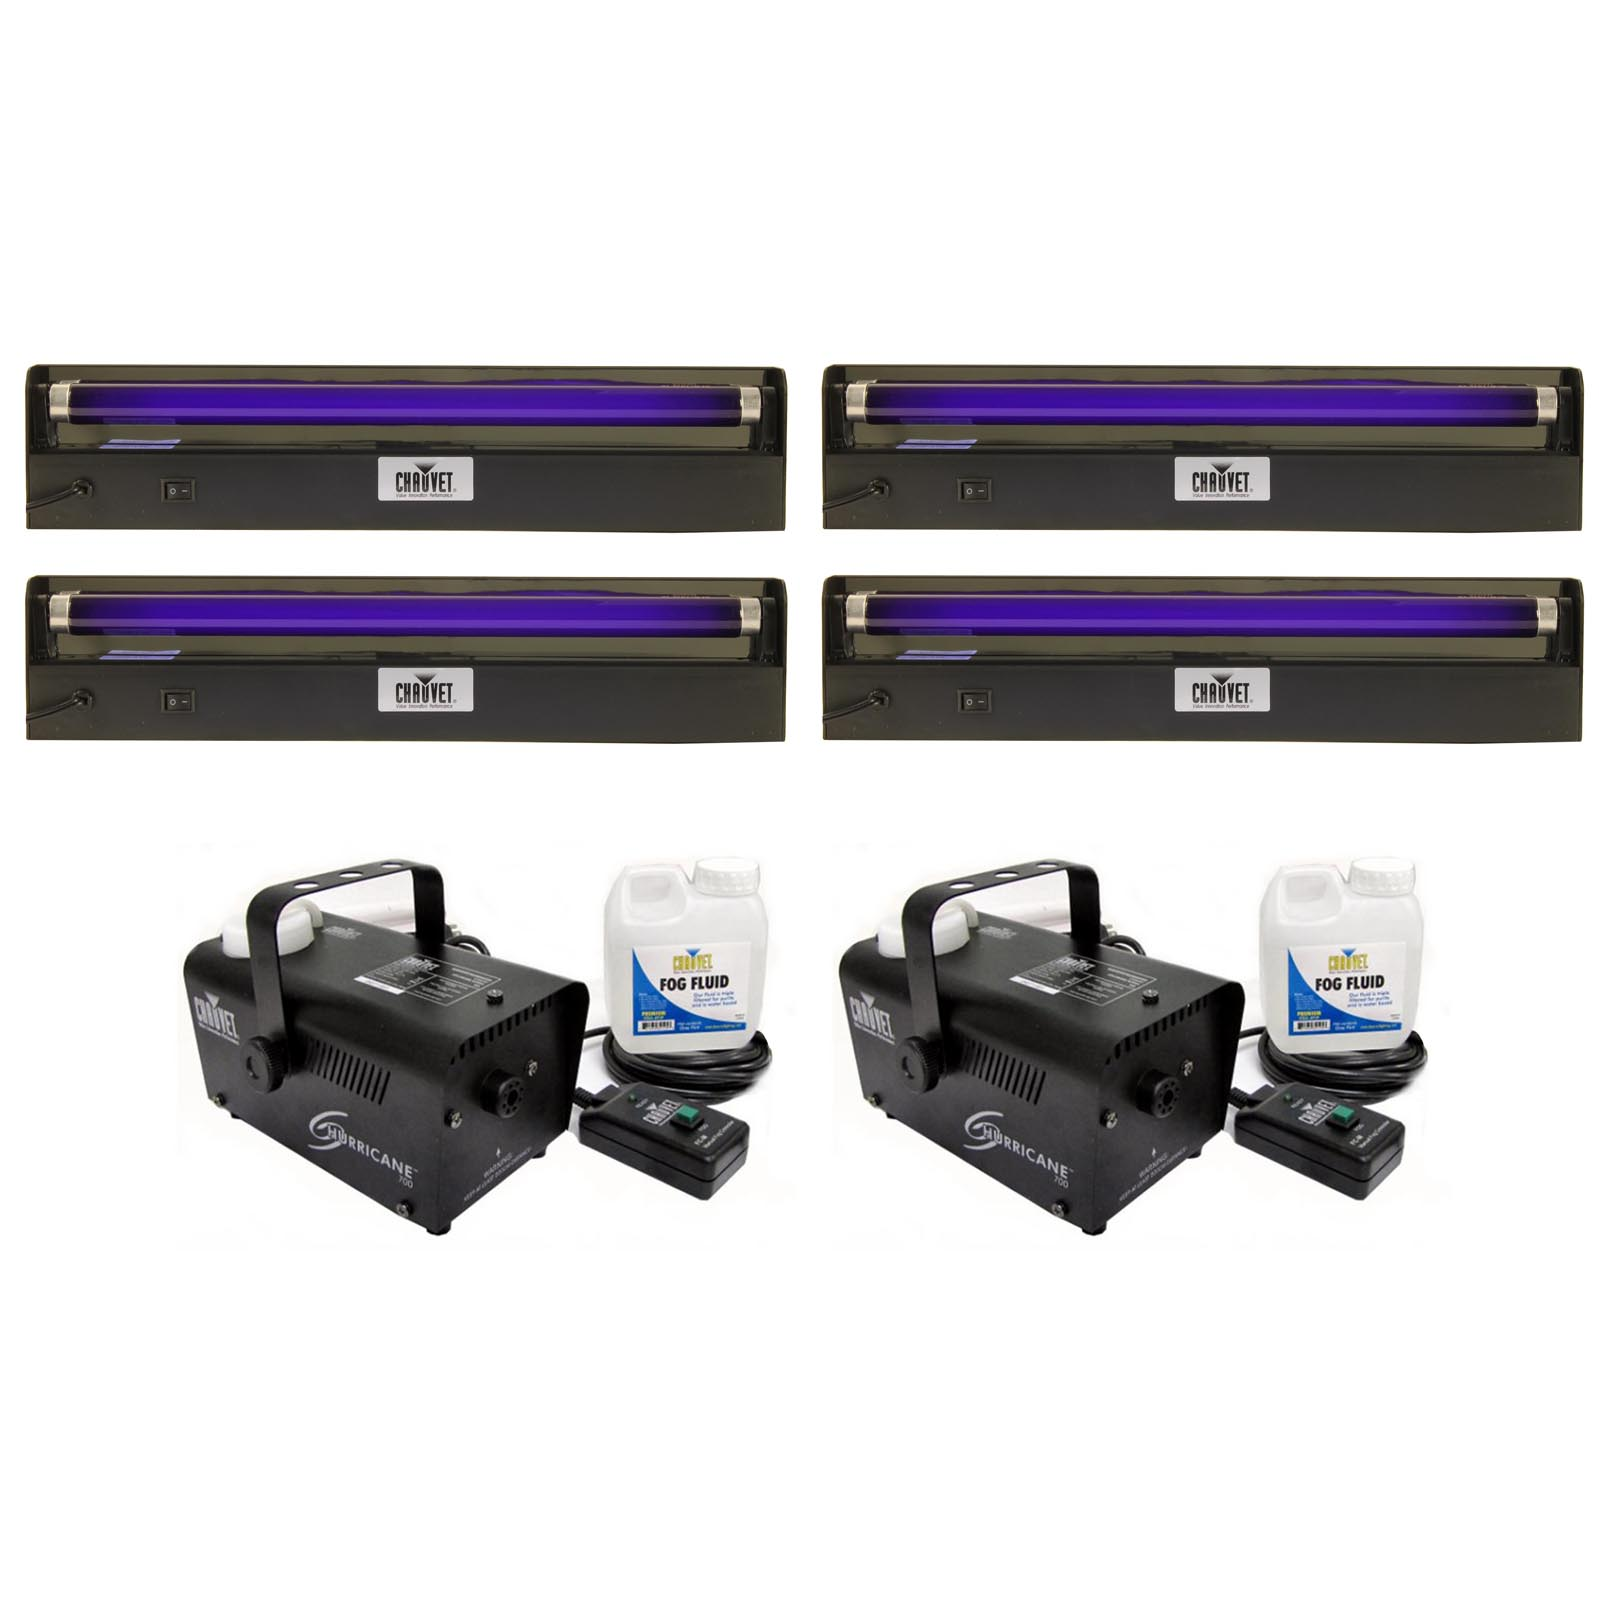 4 x NV-F18 + 2 x H700�Chauvet NV-F18 18-Inch UV Black-Lights (4) + H700 Fog Machines (2)